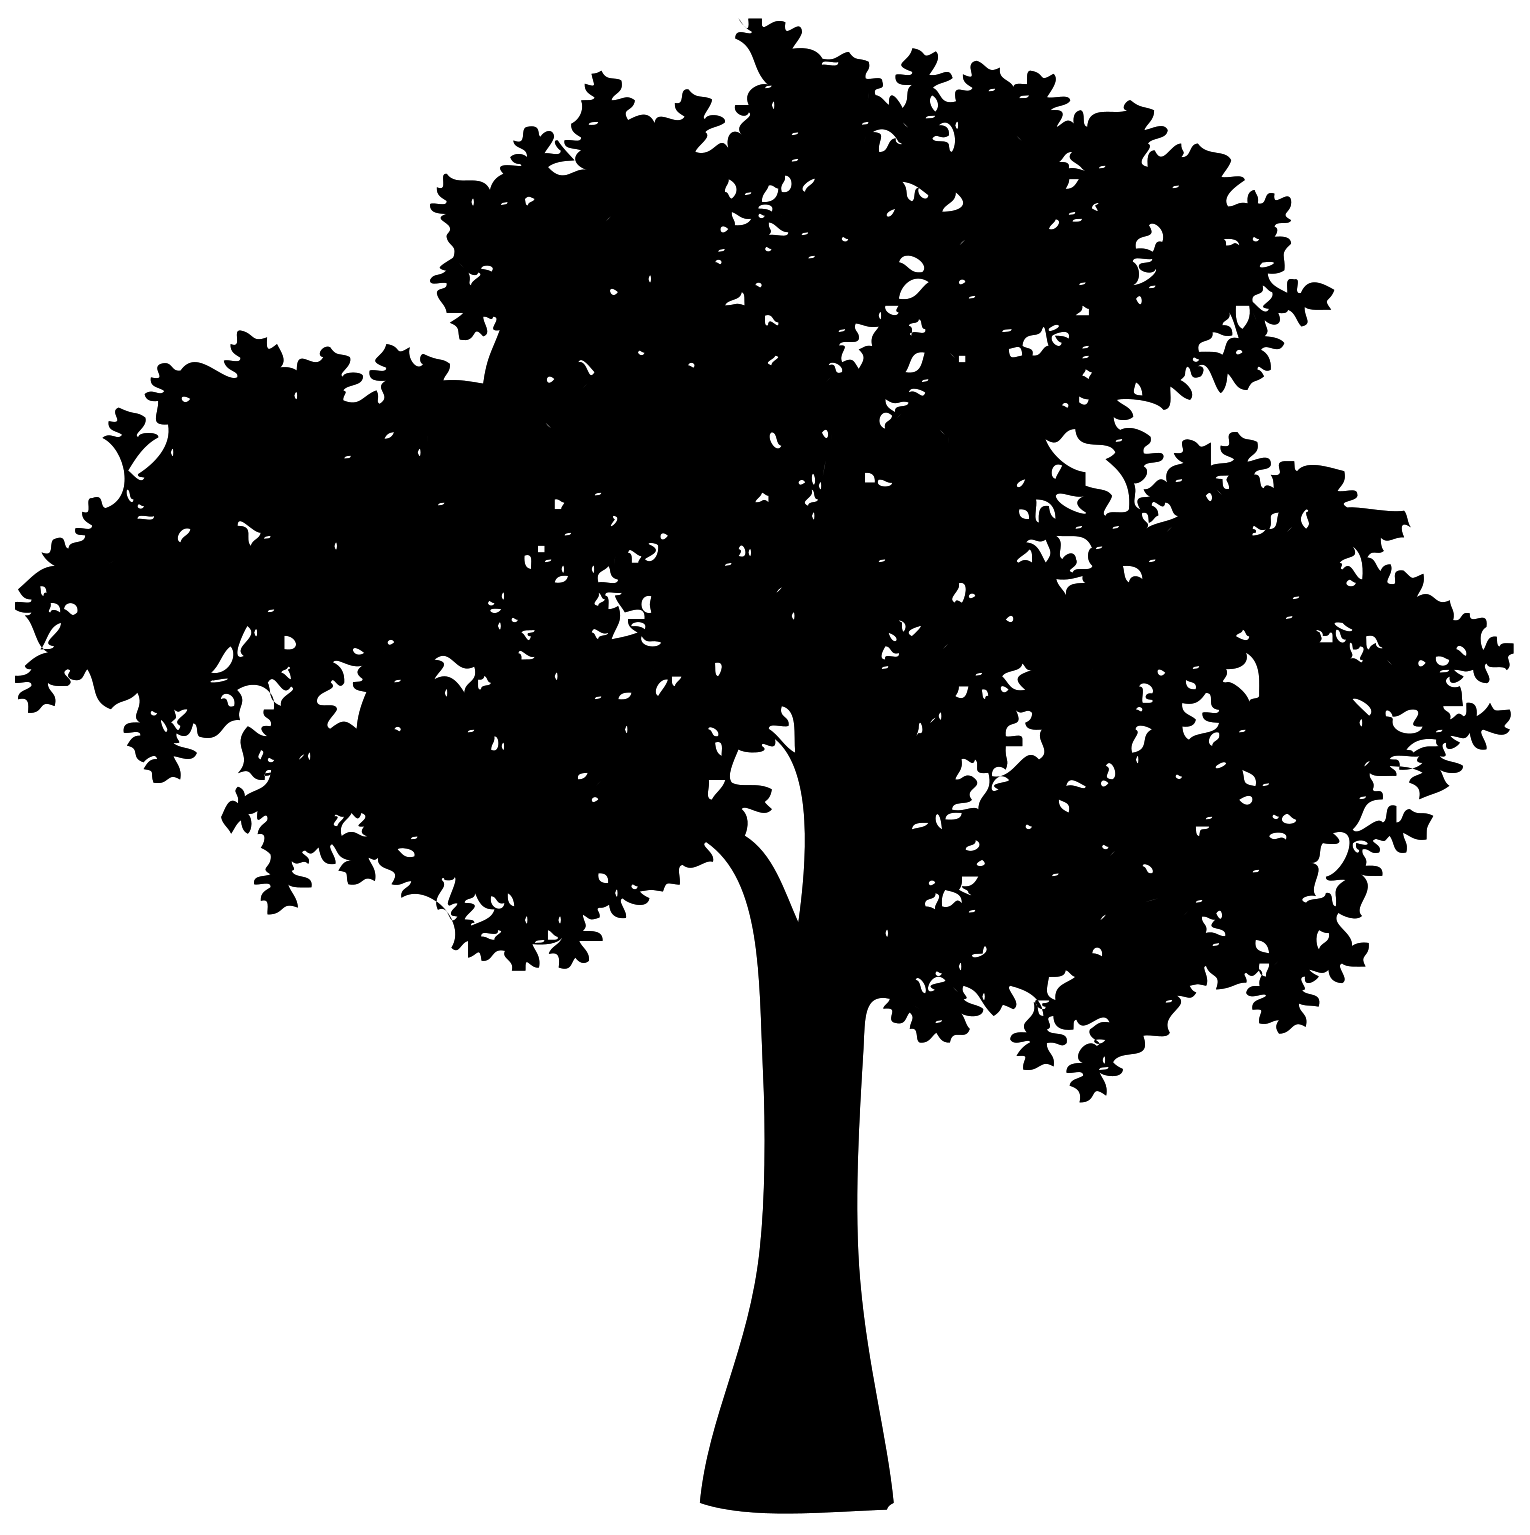 Free Dead Tree 1189369 Png With Transparent Background